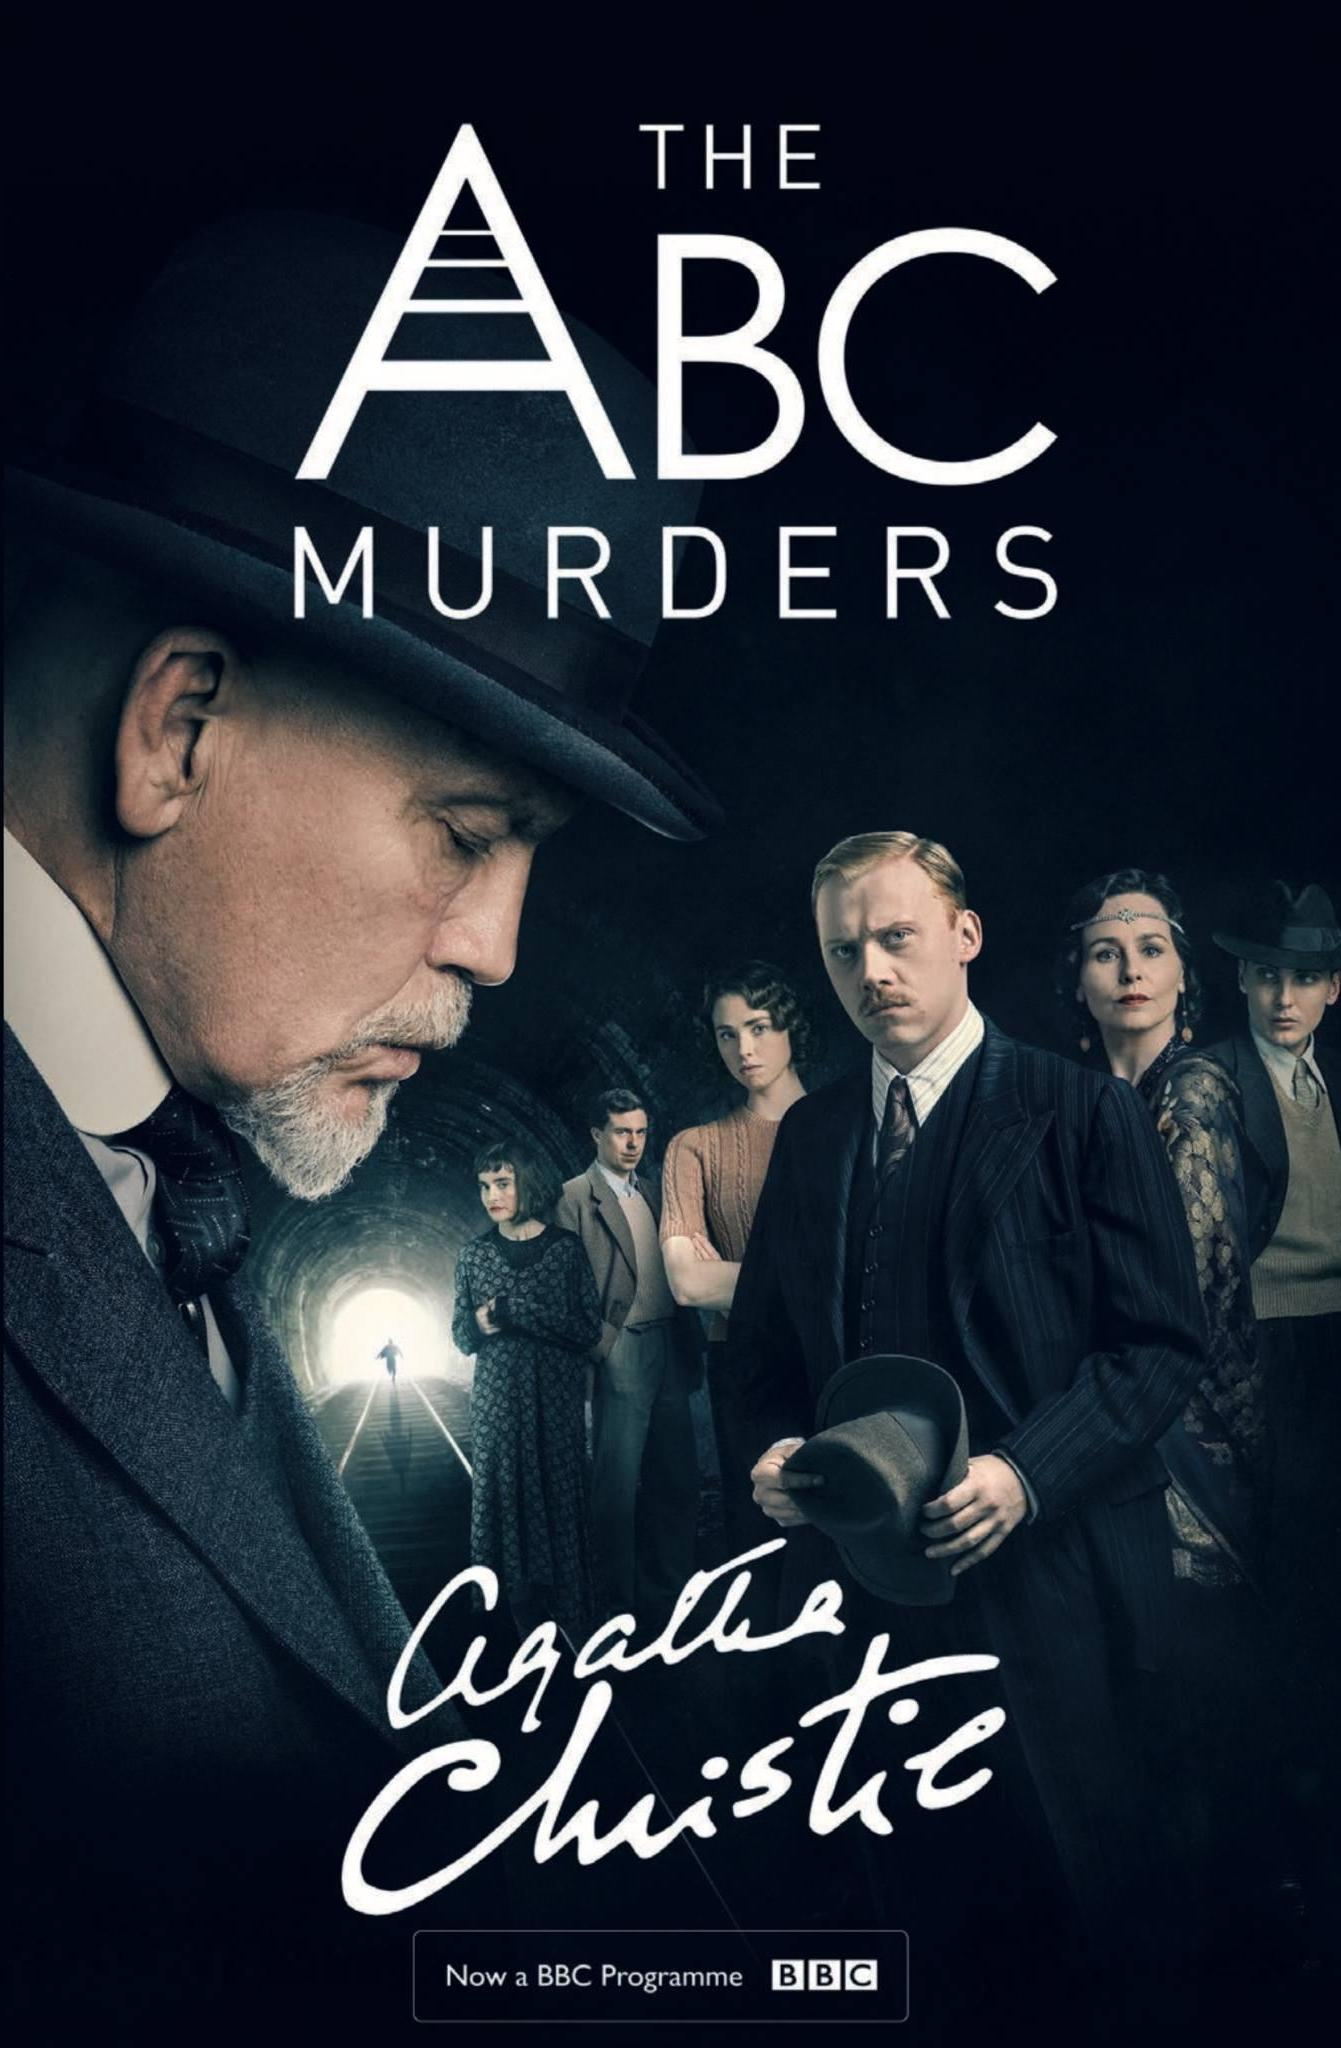 The ABC Murders S01 E03 Cut